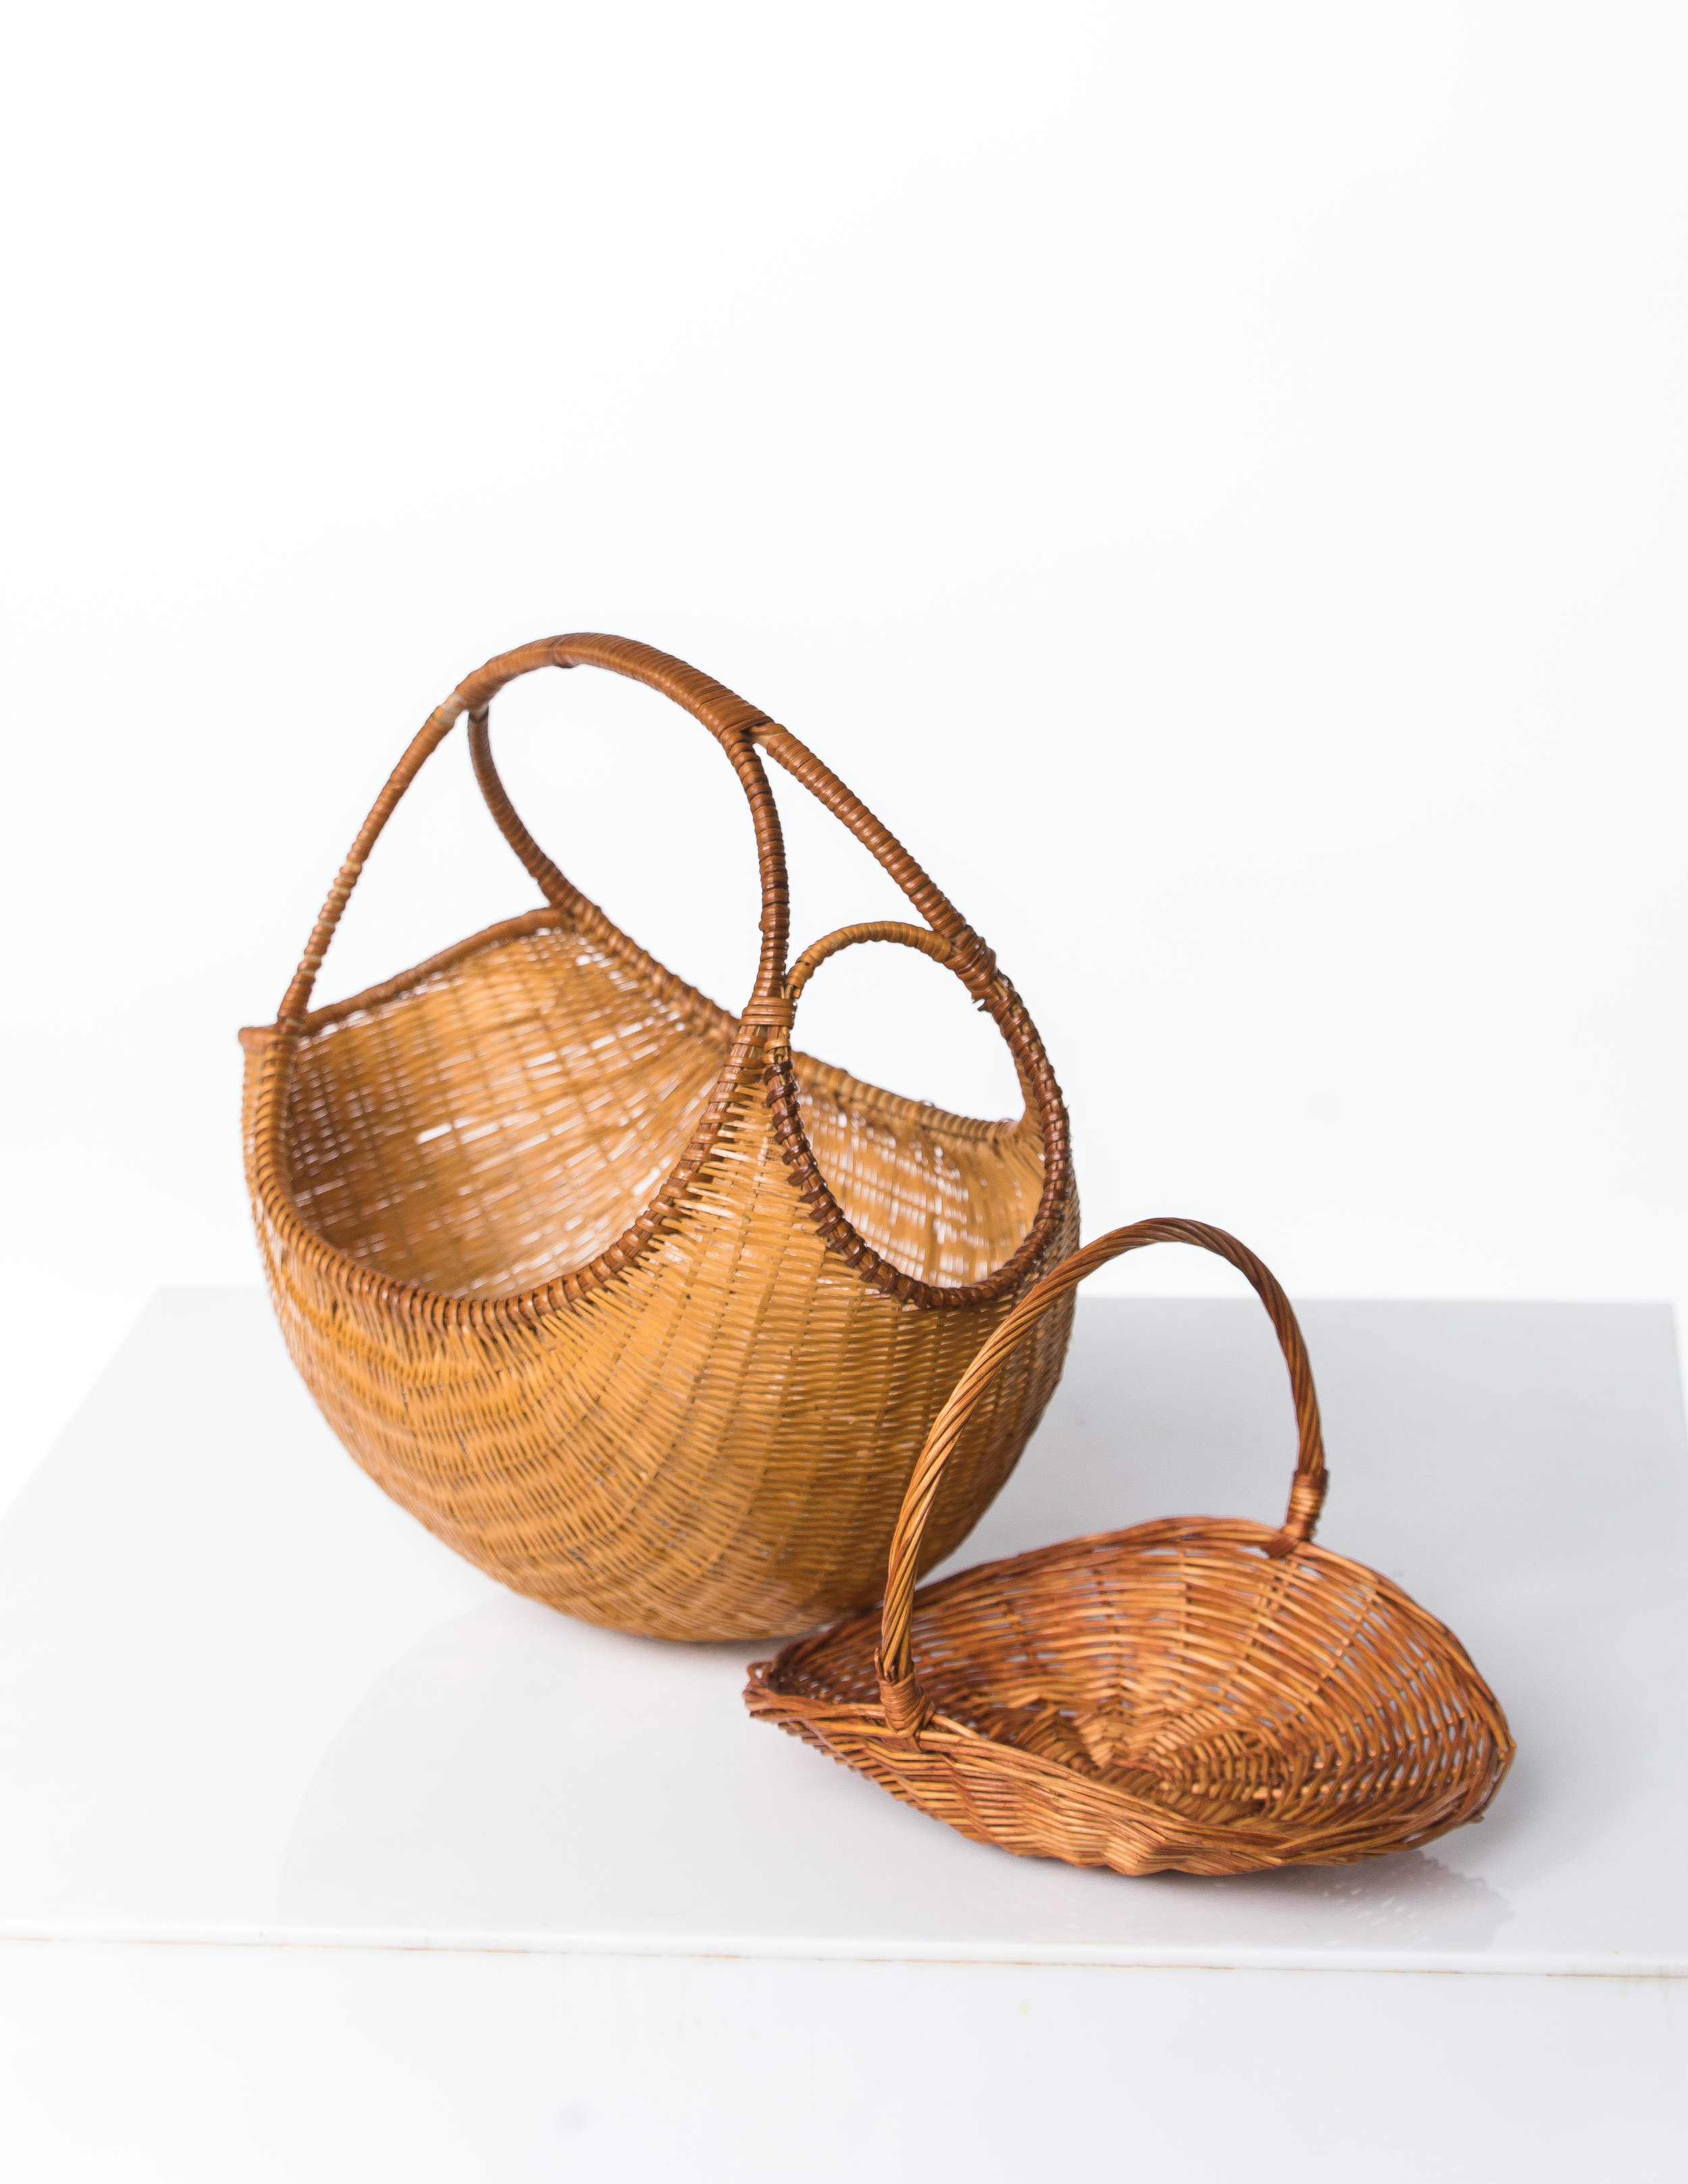 WOVEN FLORAL BASKETS